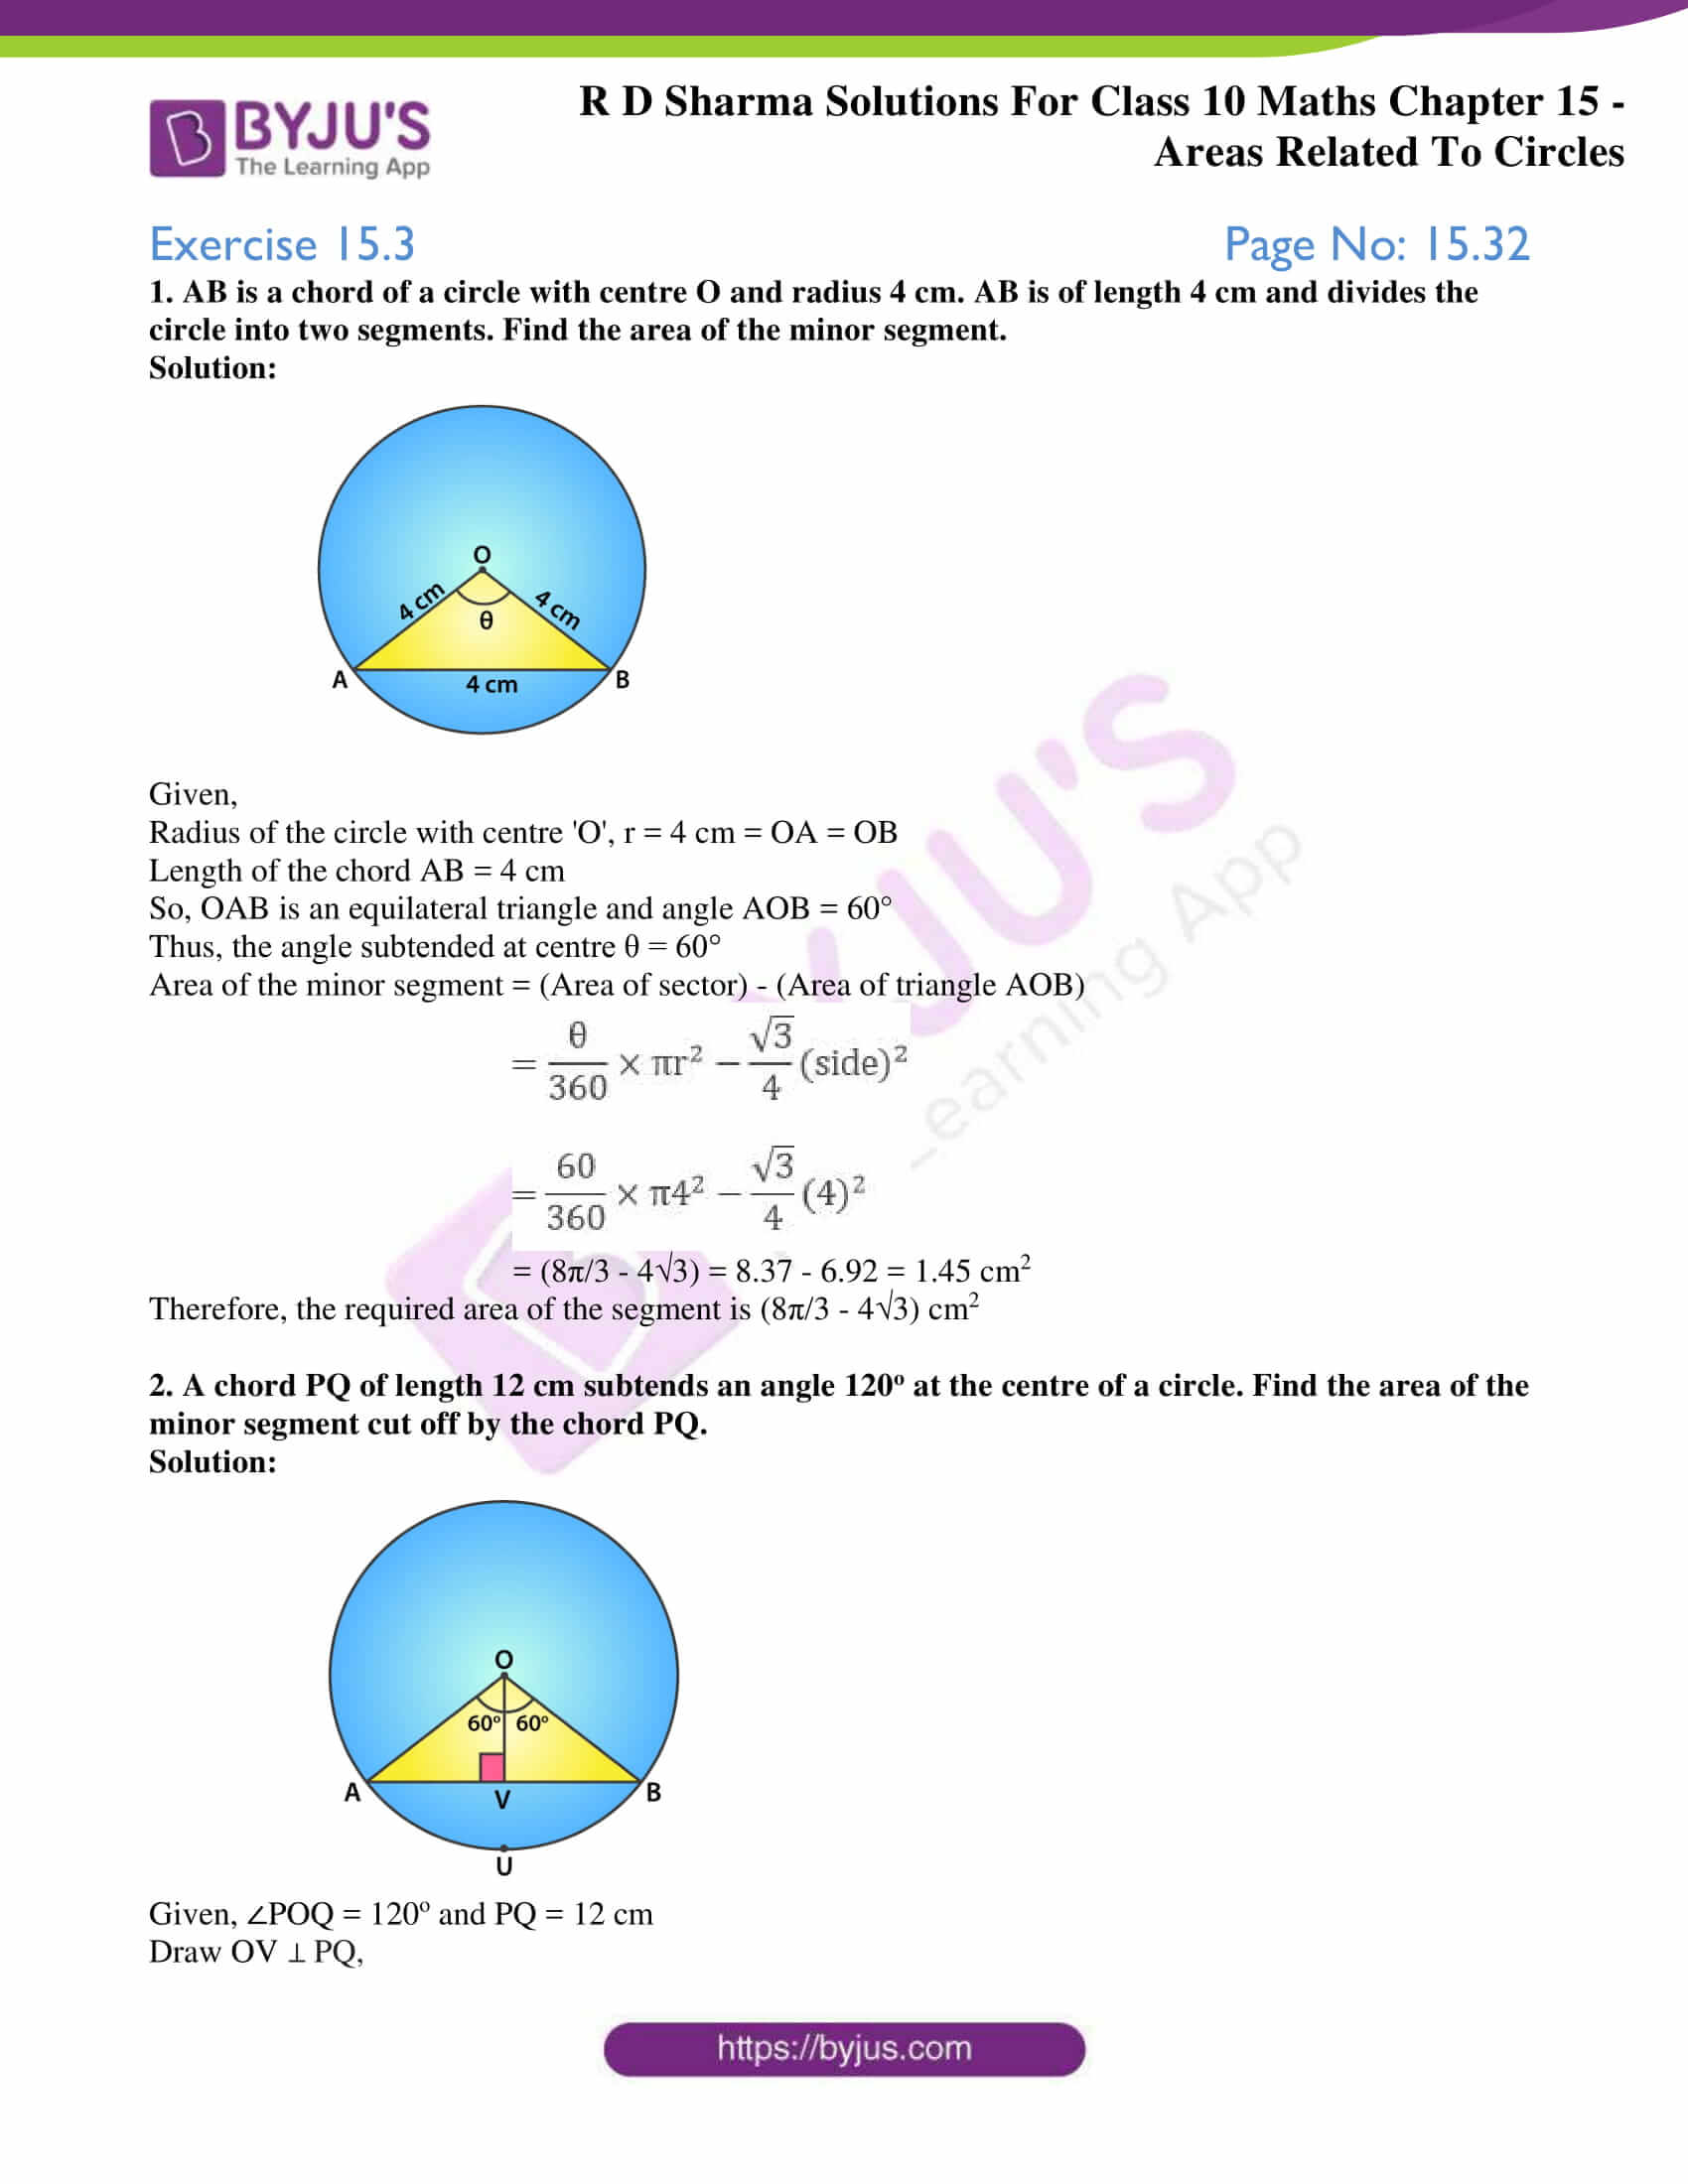 rd sharma solutions class 10 chapter 15 exercise 3